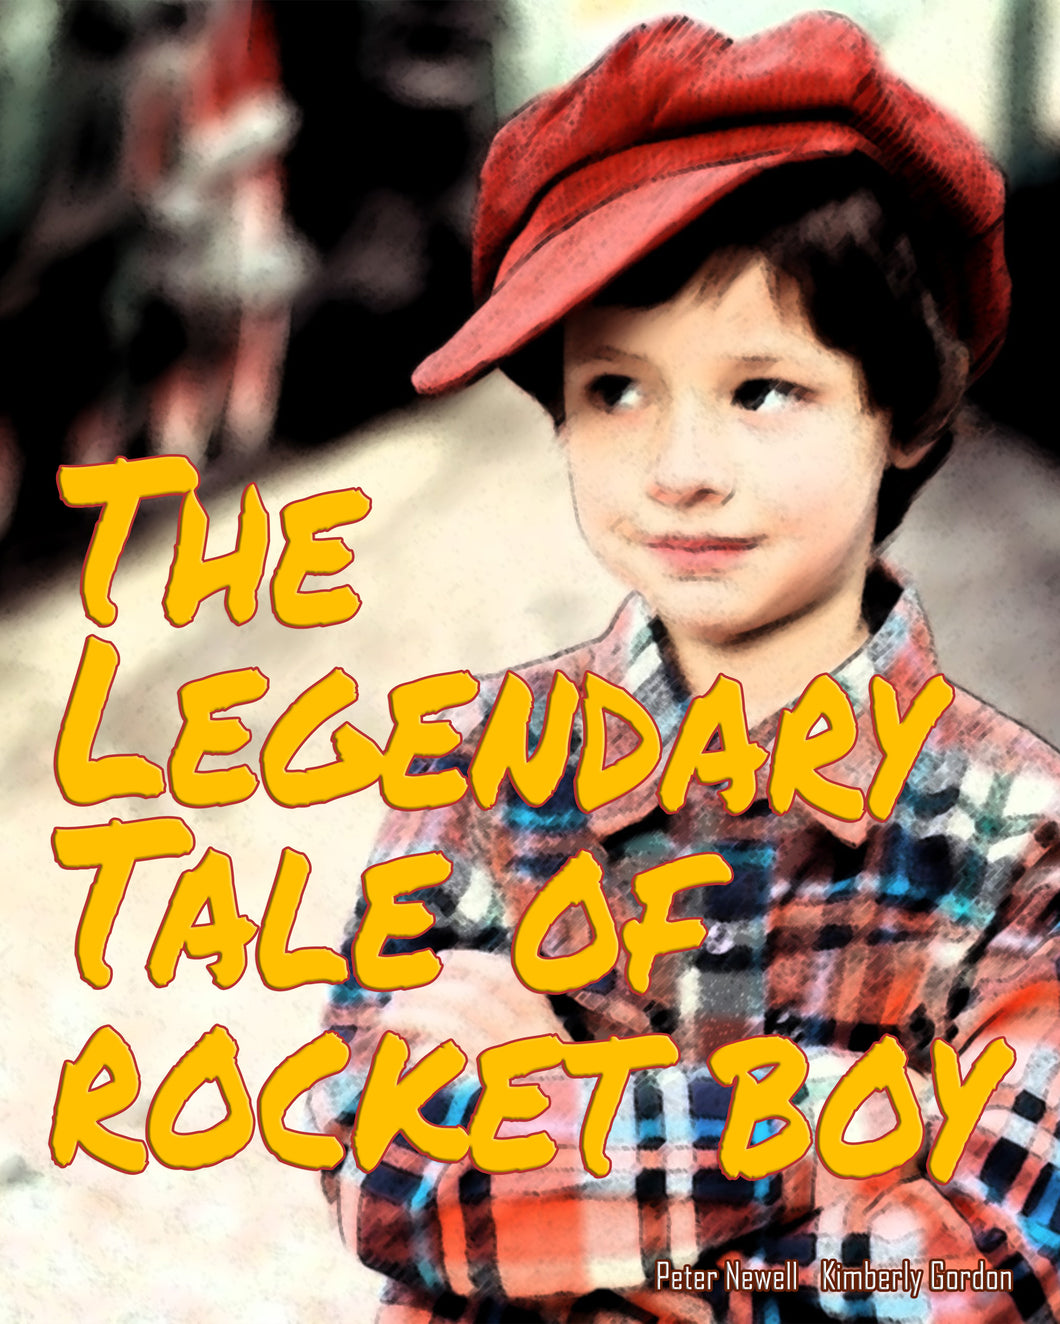 The Legendary Tale of Rocketboy